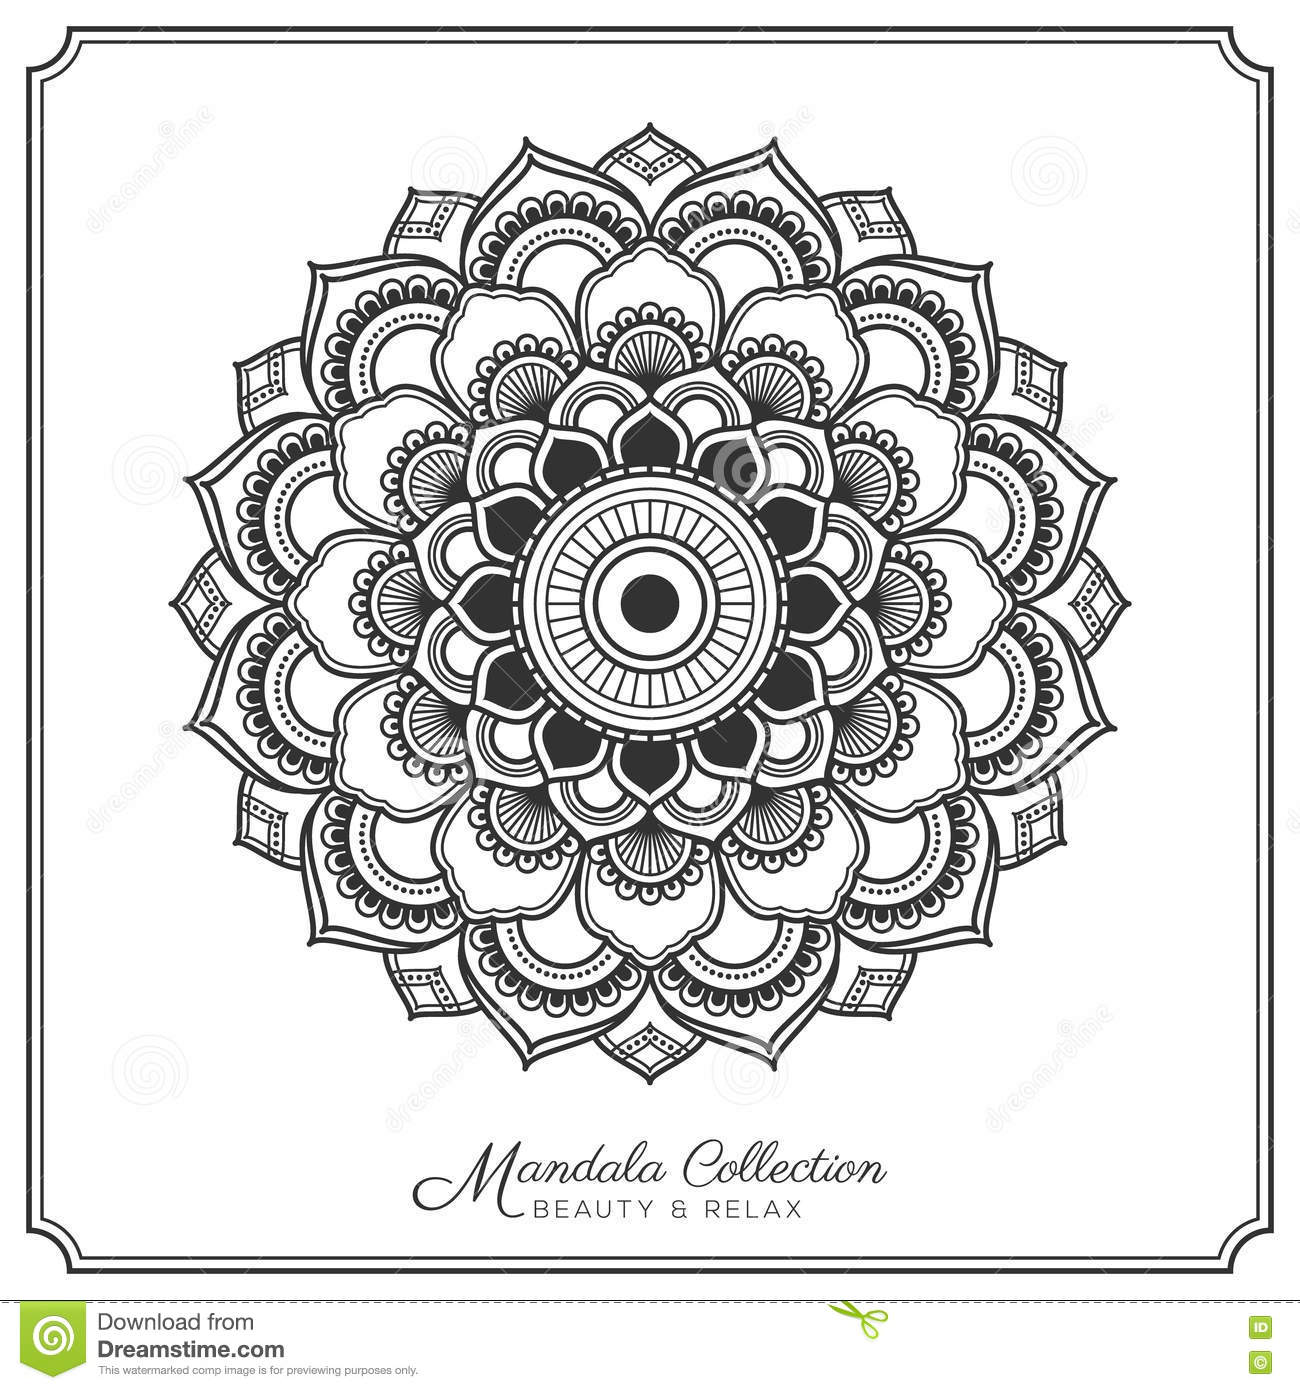 Mandala Tattoo Design Template Stock Vector Illustration Of Floral Chevy Equinox Engine Diagram Decorative Ornament For Coloring Page Greeting Card Invitation Yoga And Spa Symbol